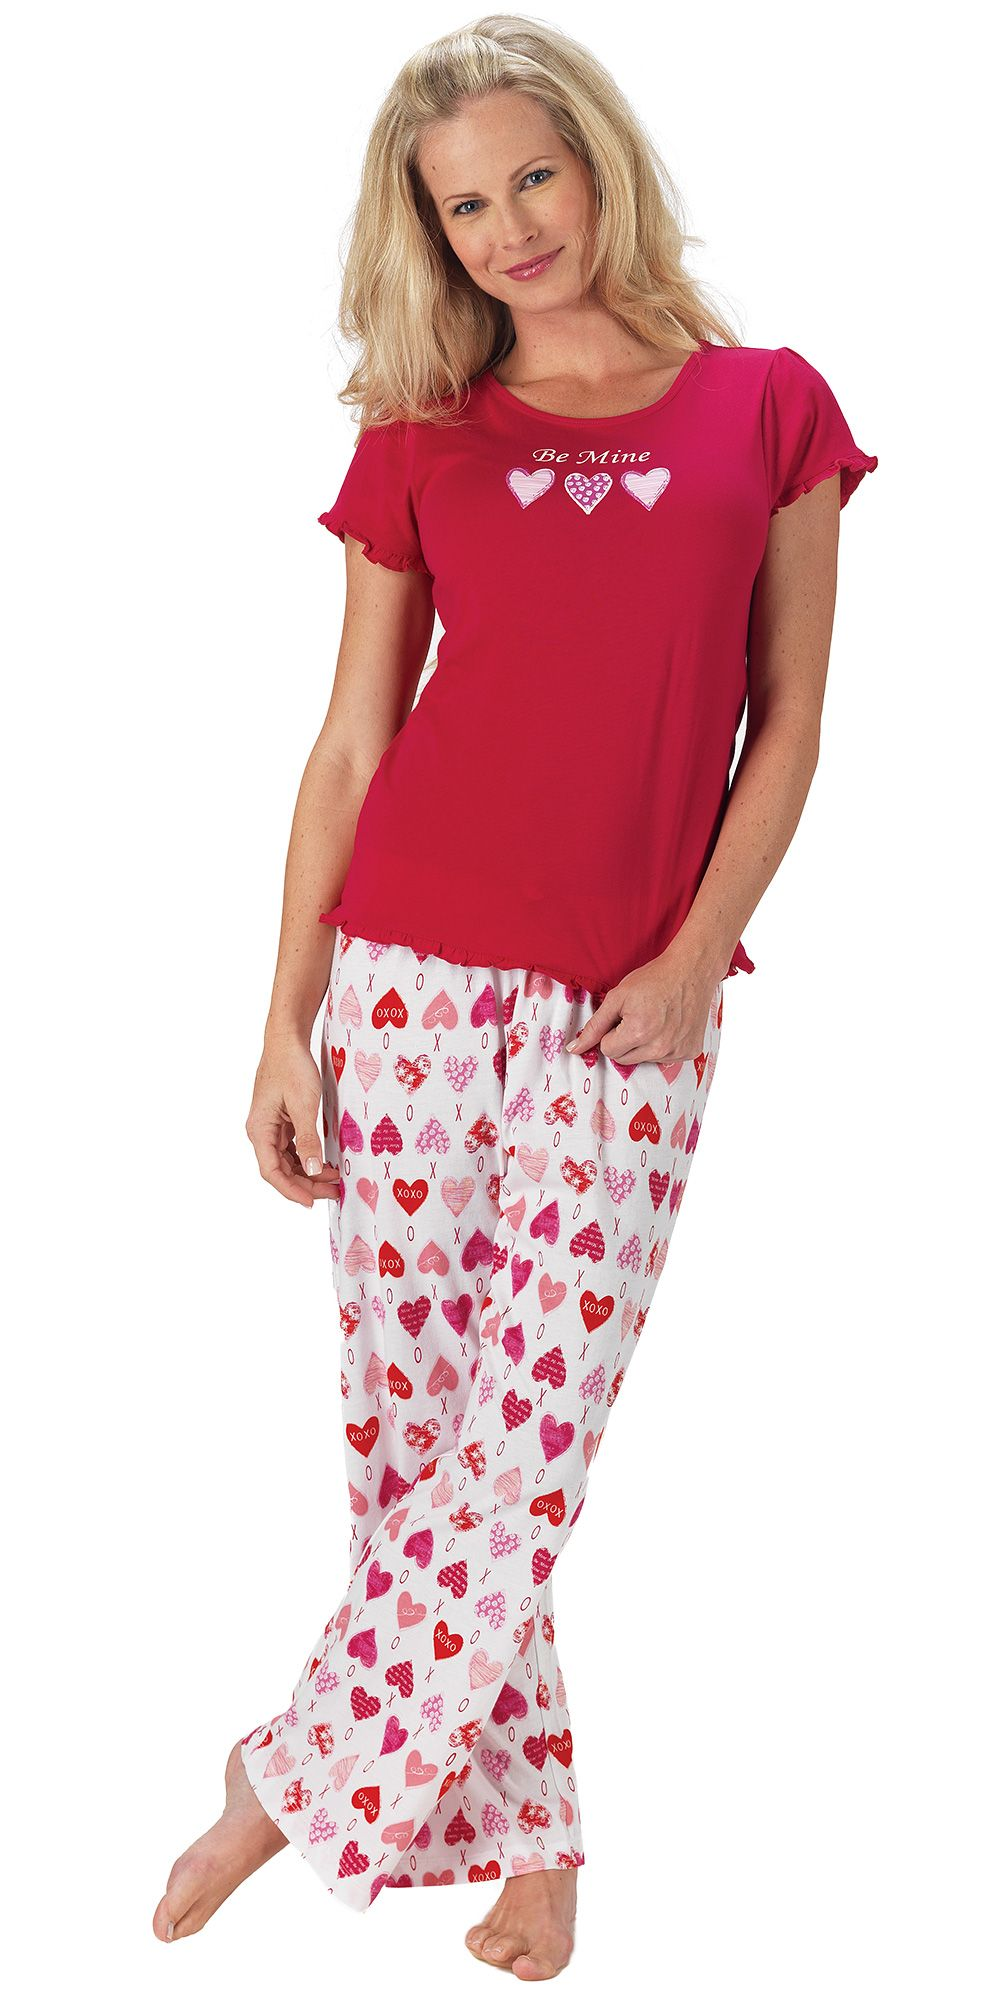 Be Mine PJs Valentines Day Pajamas From PajamaGram 49